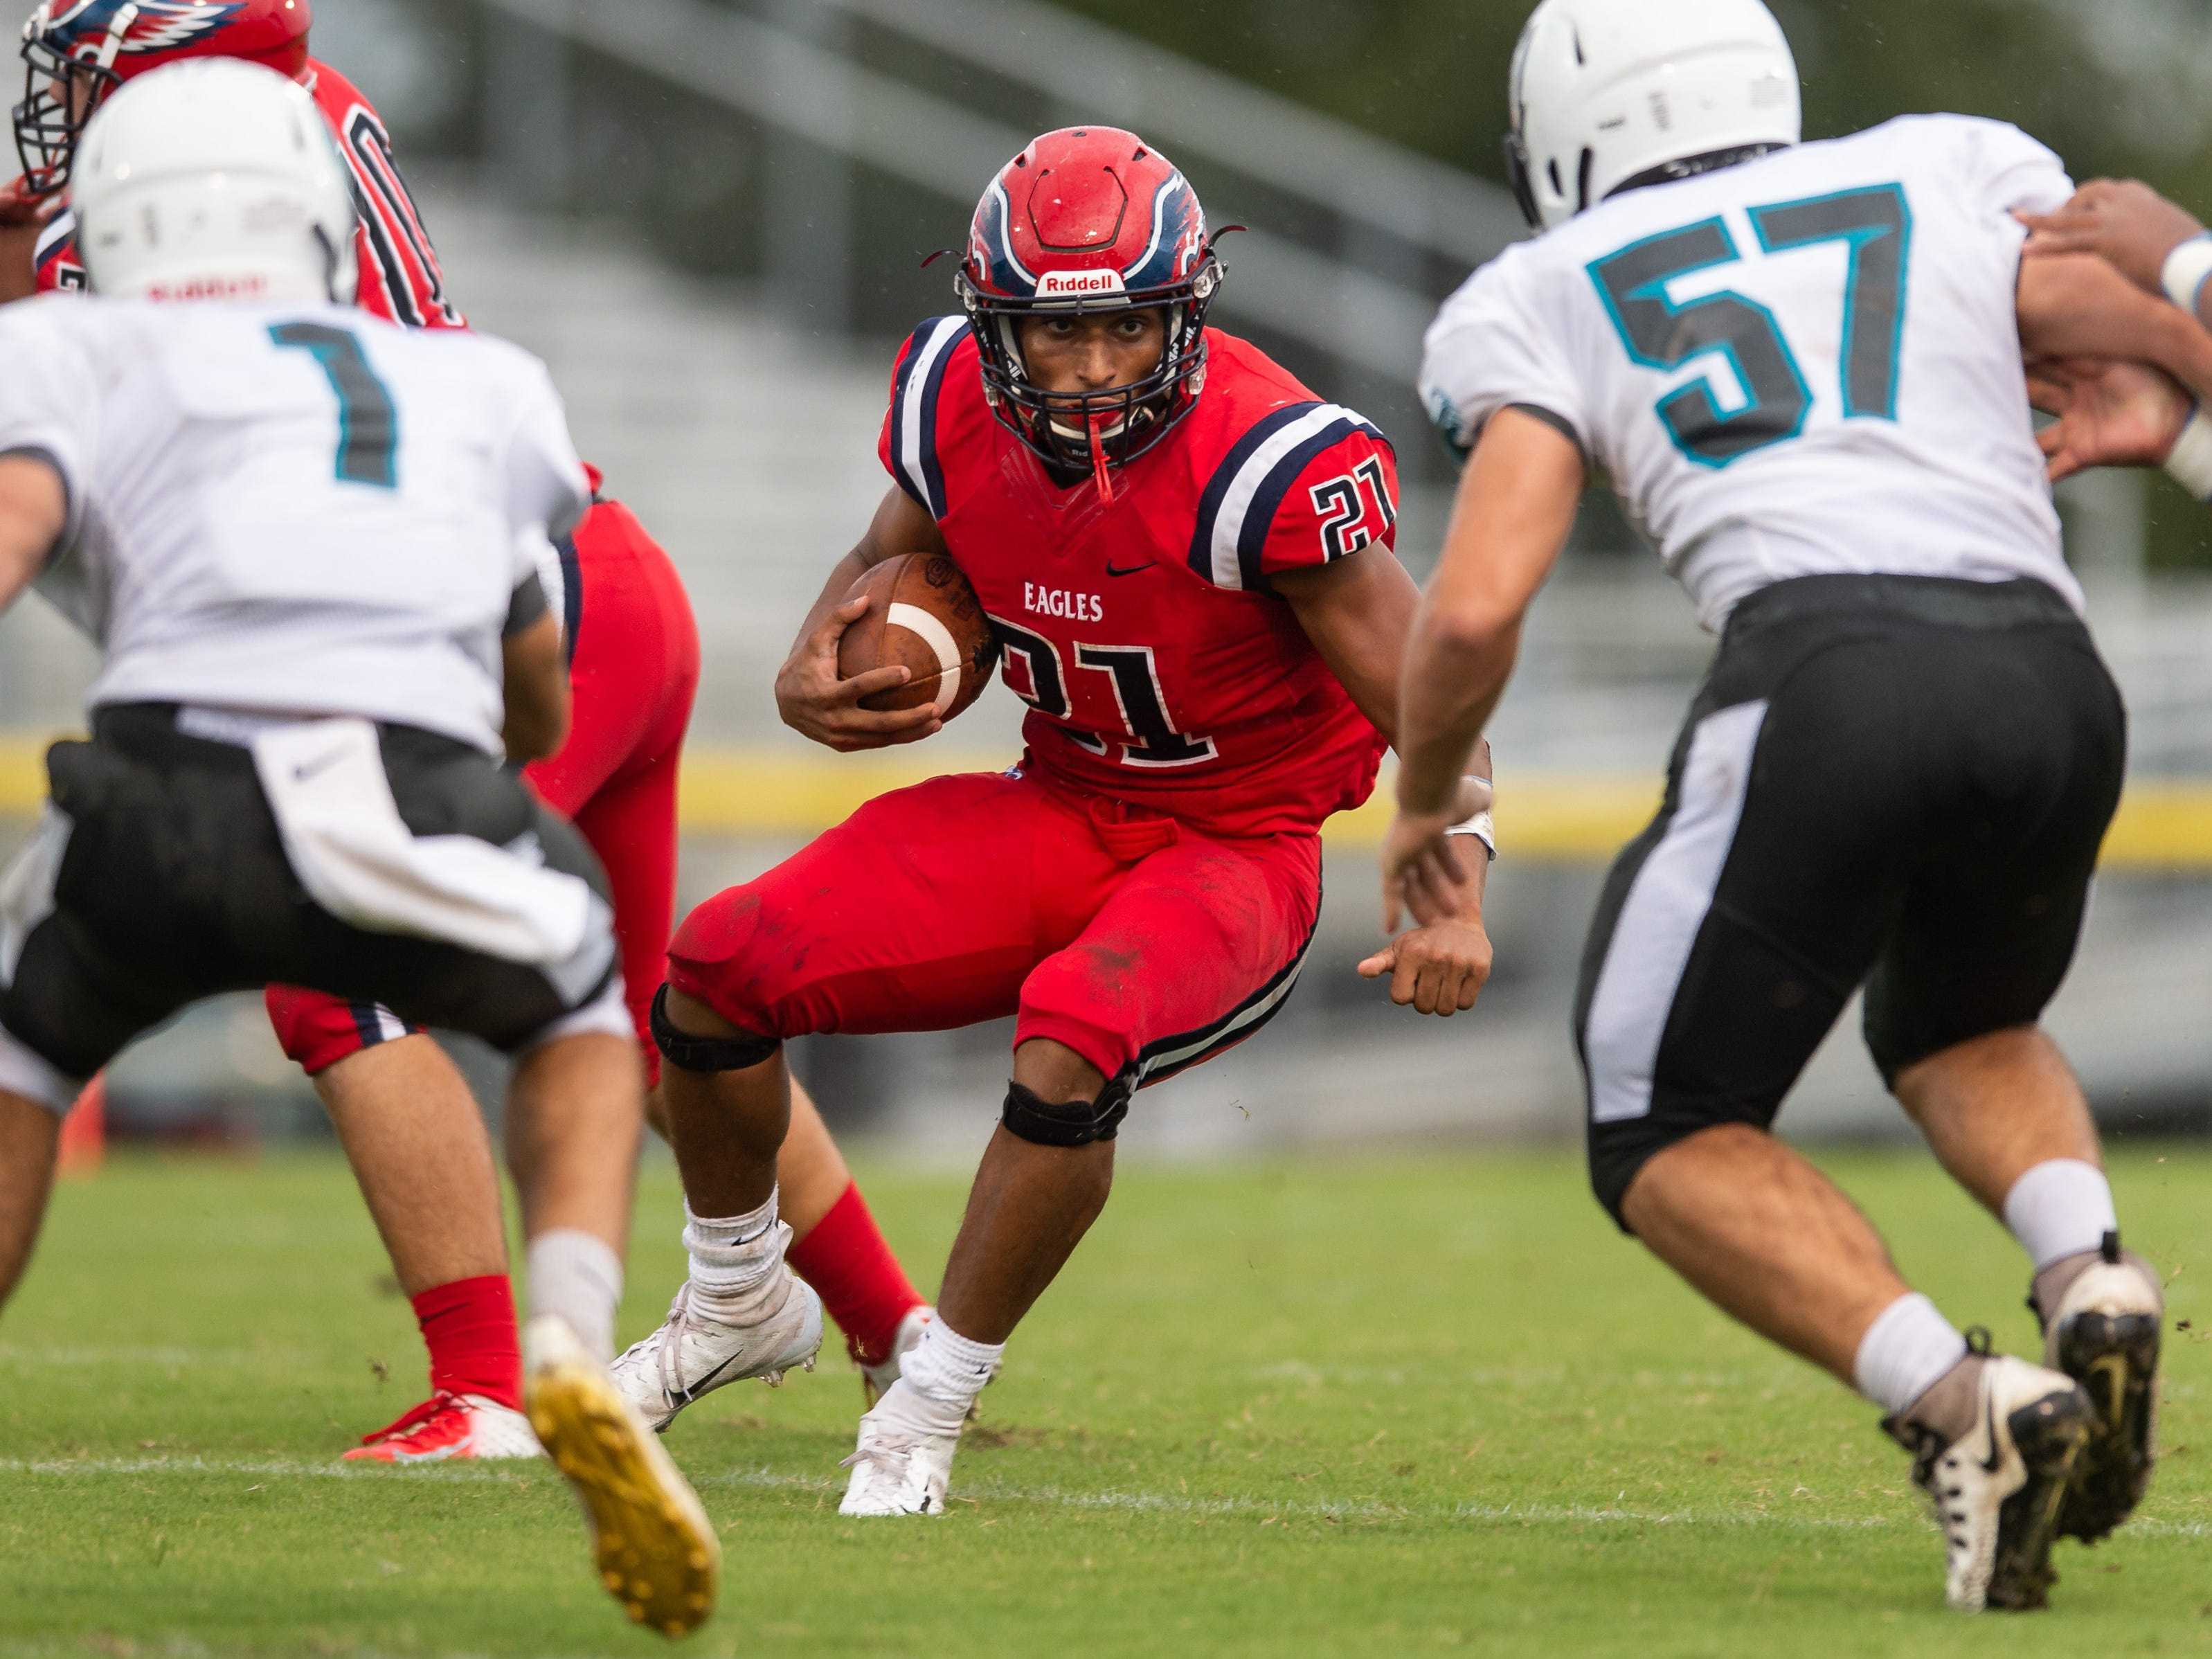 St. Lucie West Centennial's Cedrick Wilcox (center) stares down Jensen Beach defender Andrew Perry (right) on a run in the second quarter of the high school football game Wednesday, Aug. 29, 2018, at South County Regional Stadium in Port St. Lucie.